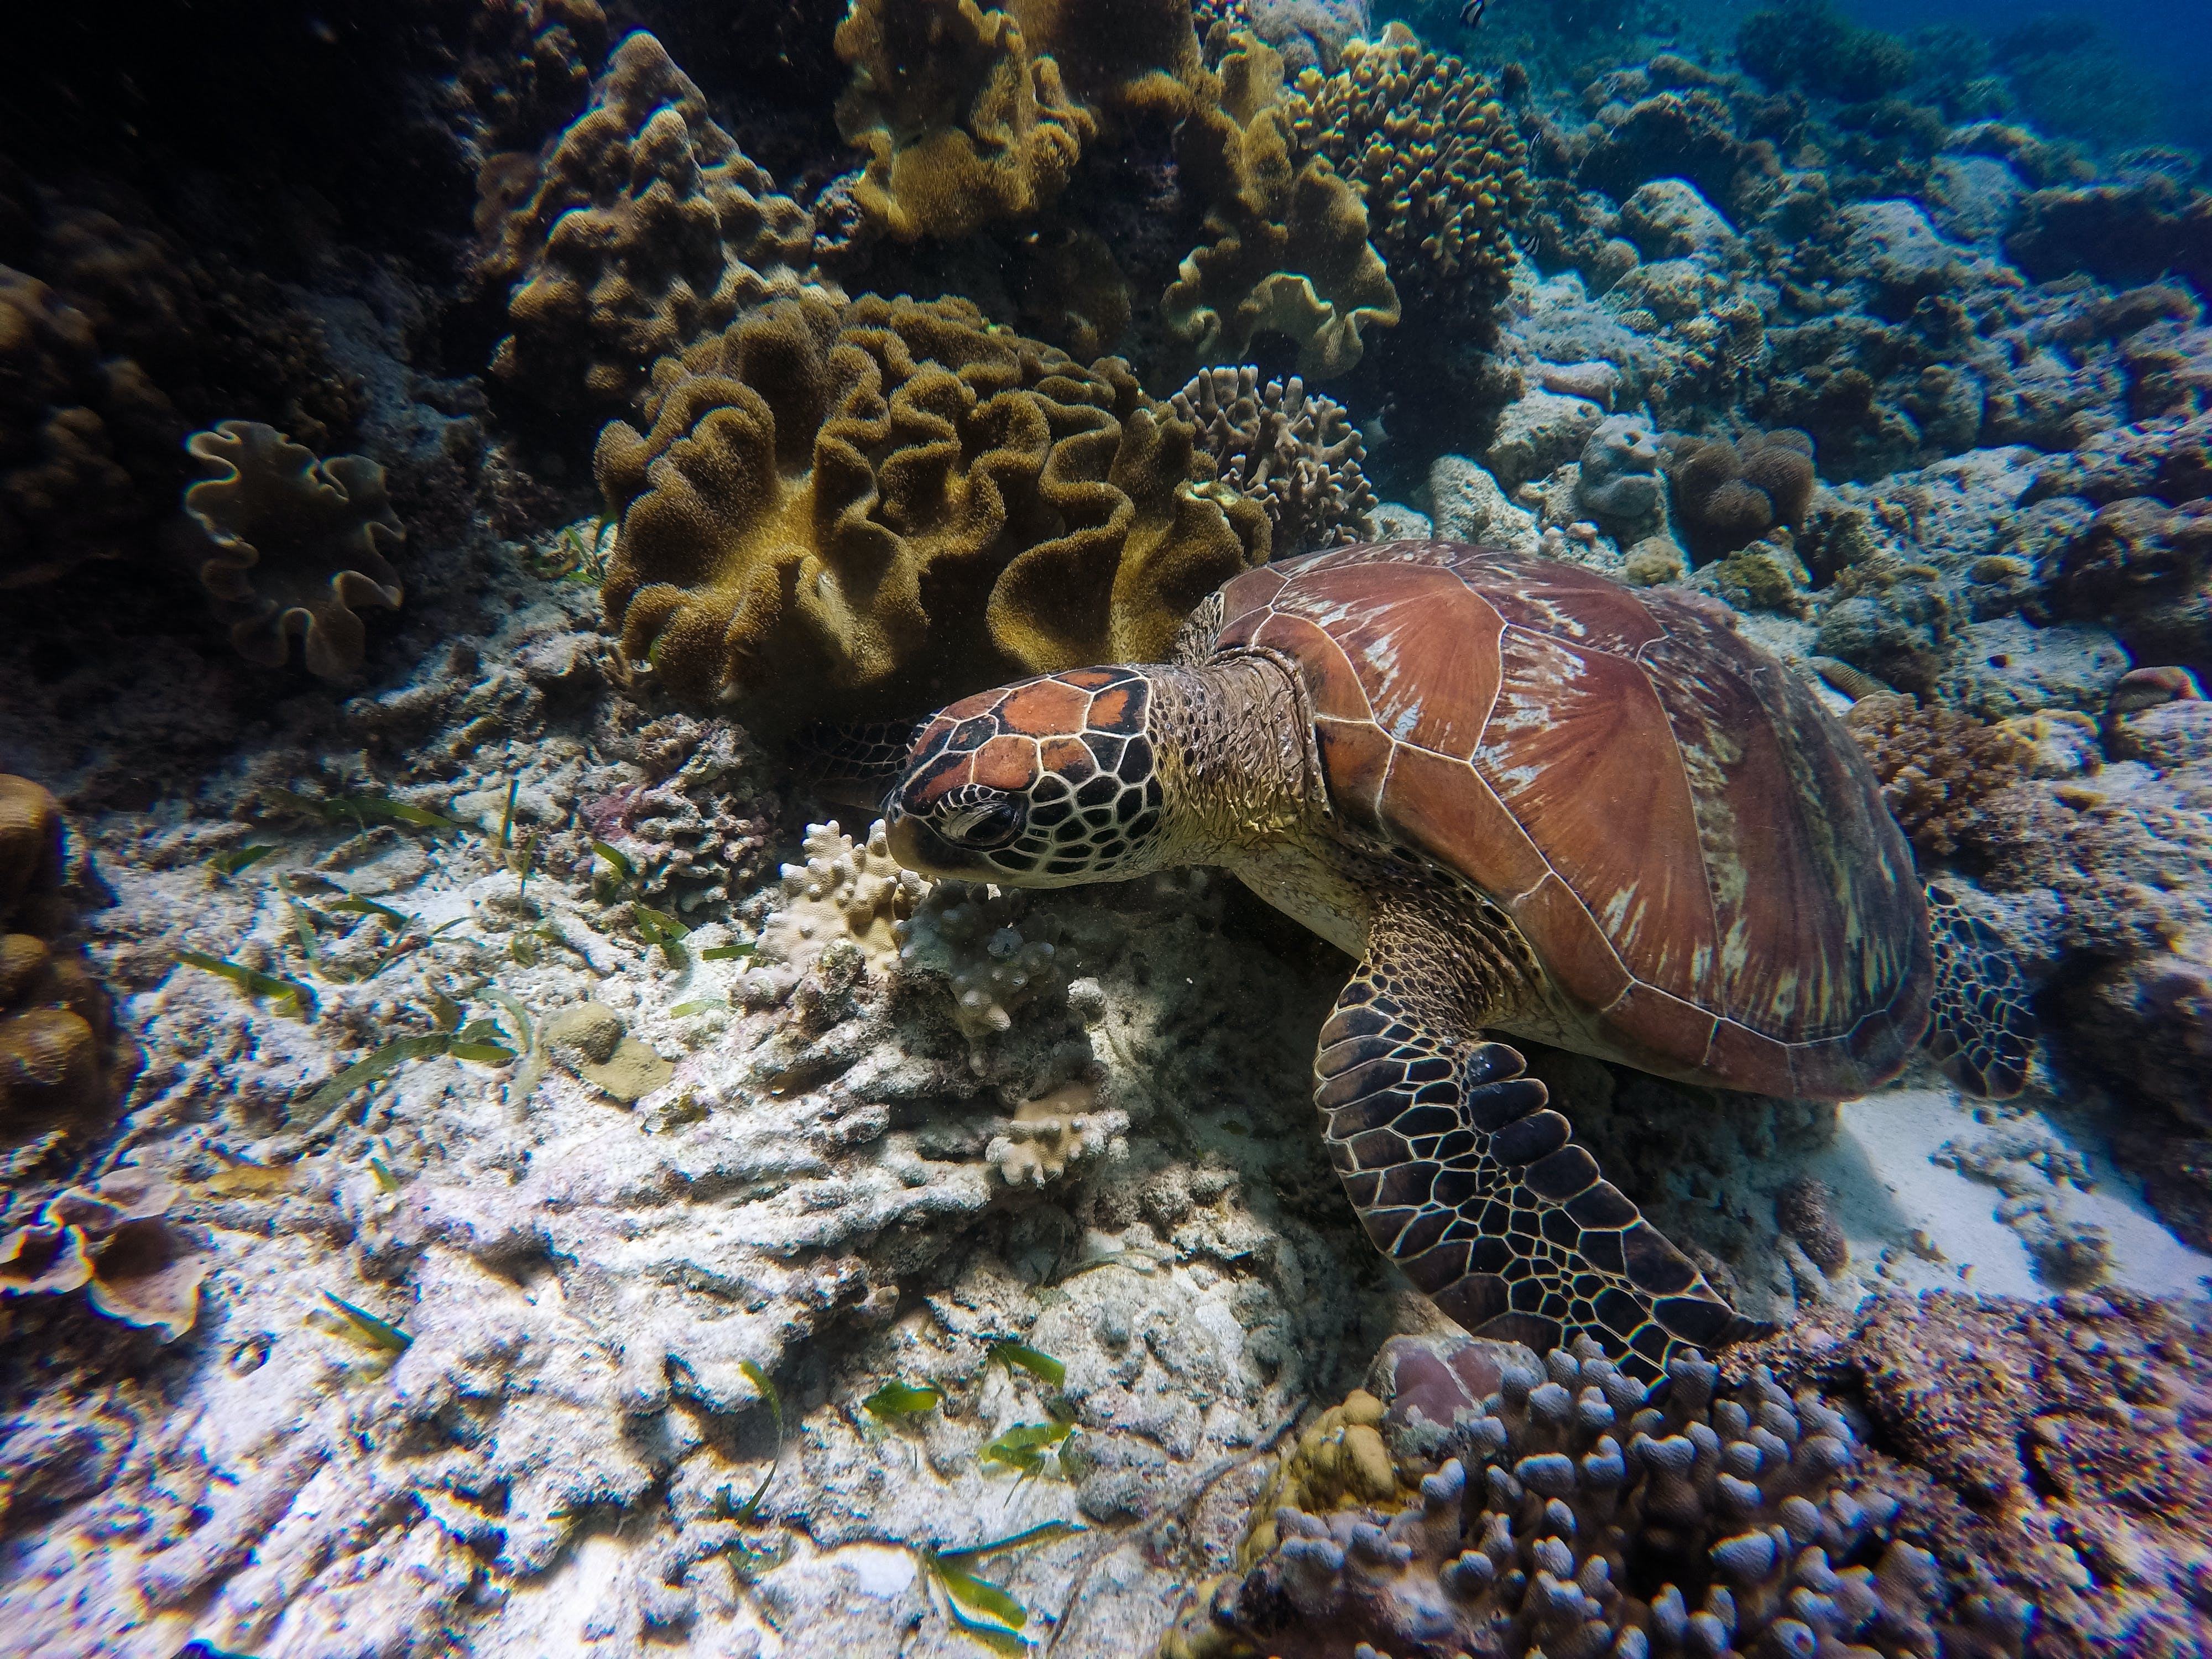 Brown and Grey Turtle in Underwater Photography